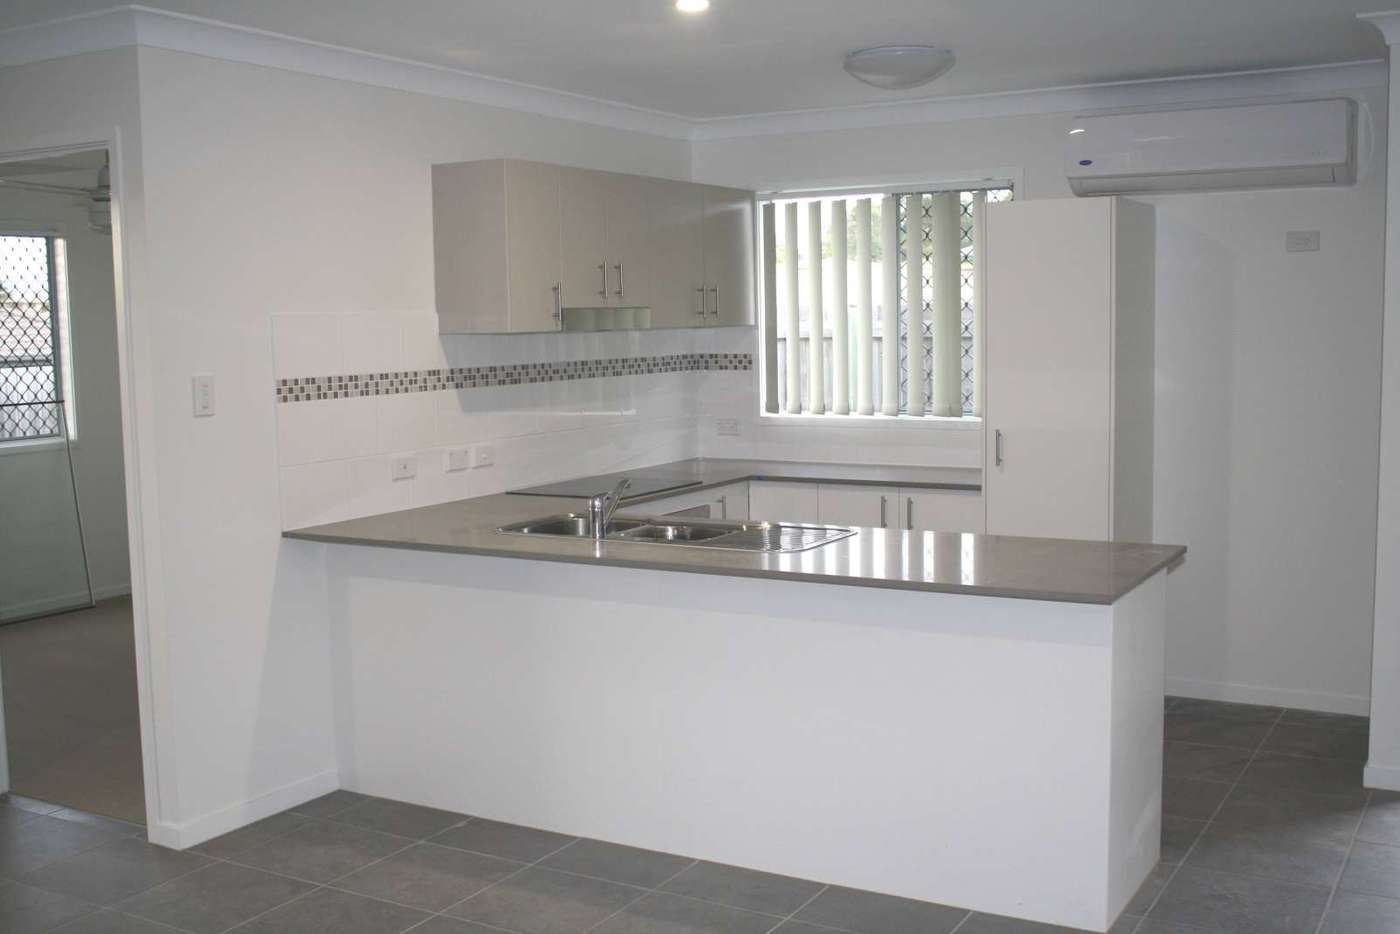 Main view of Homely semiDetached listing, 1/21 O'Dea Crescent, Goodna QLD 4300